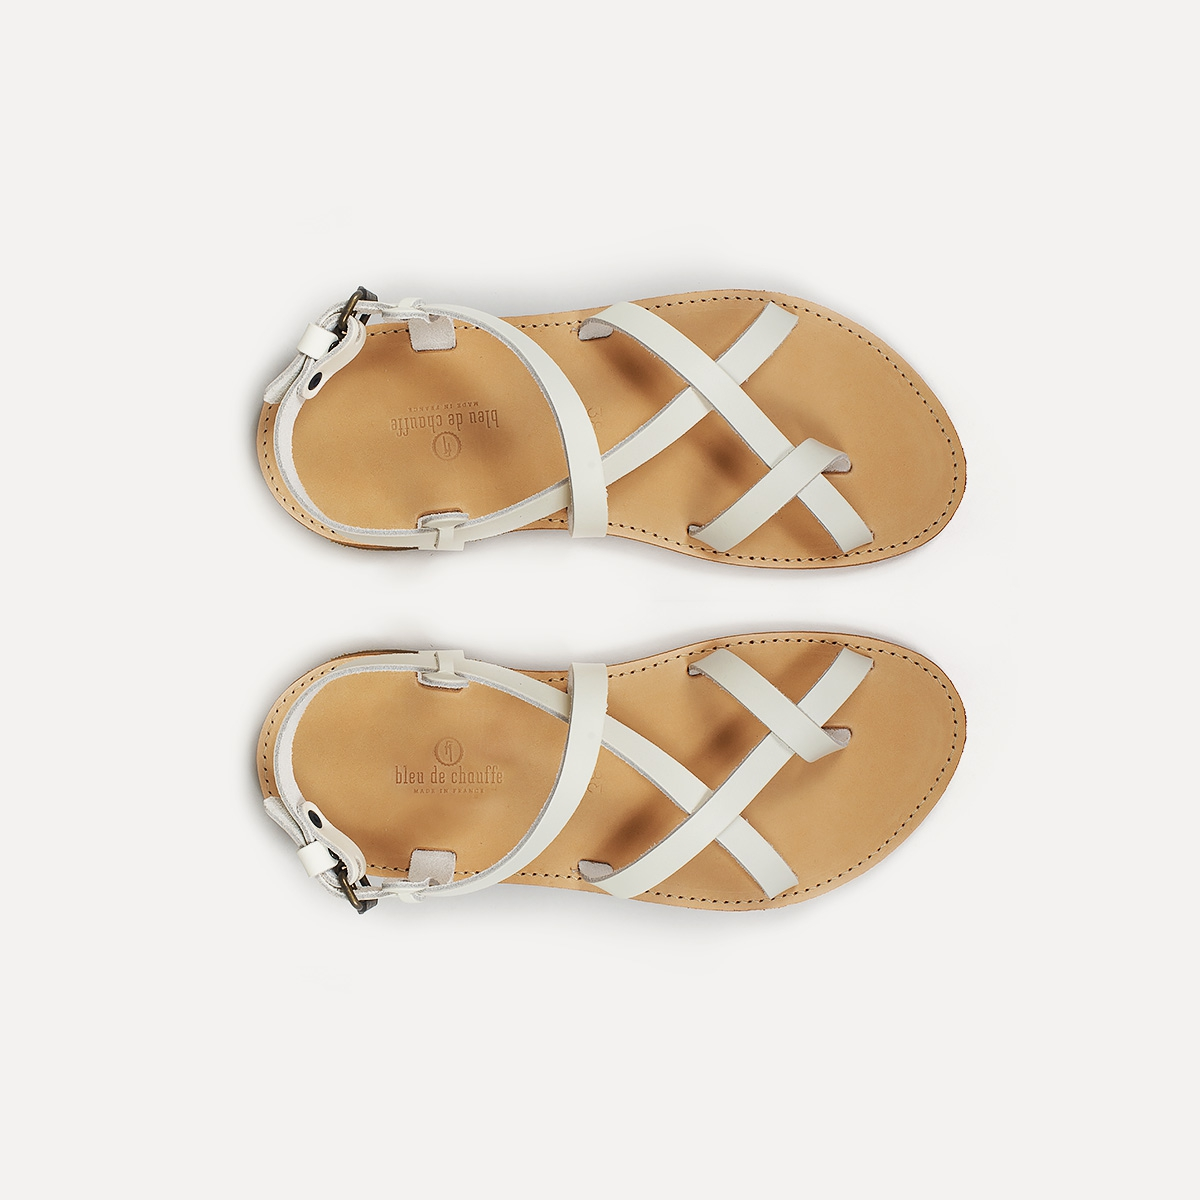 Nara leather sandals - White (image n°1)